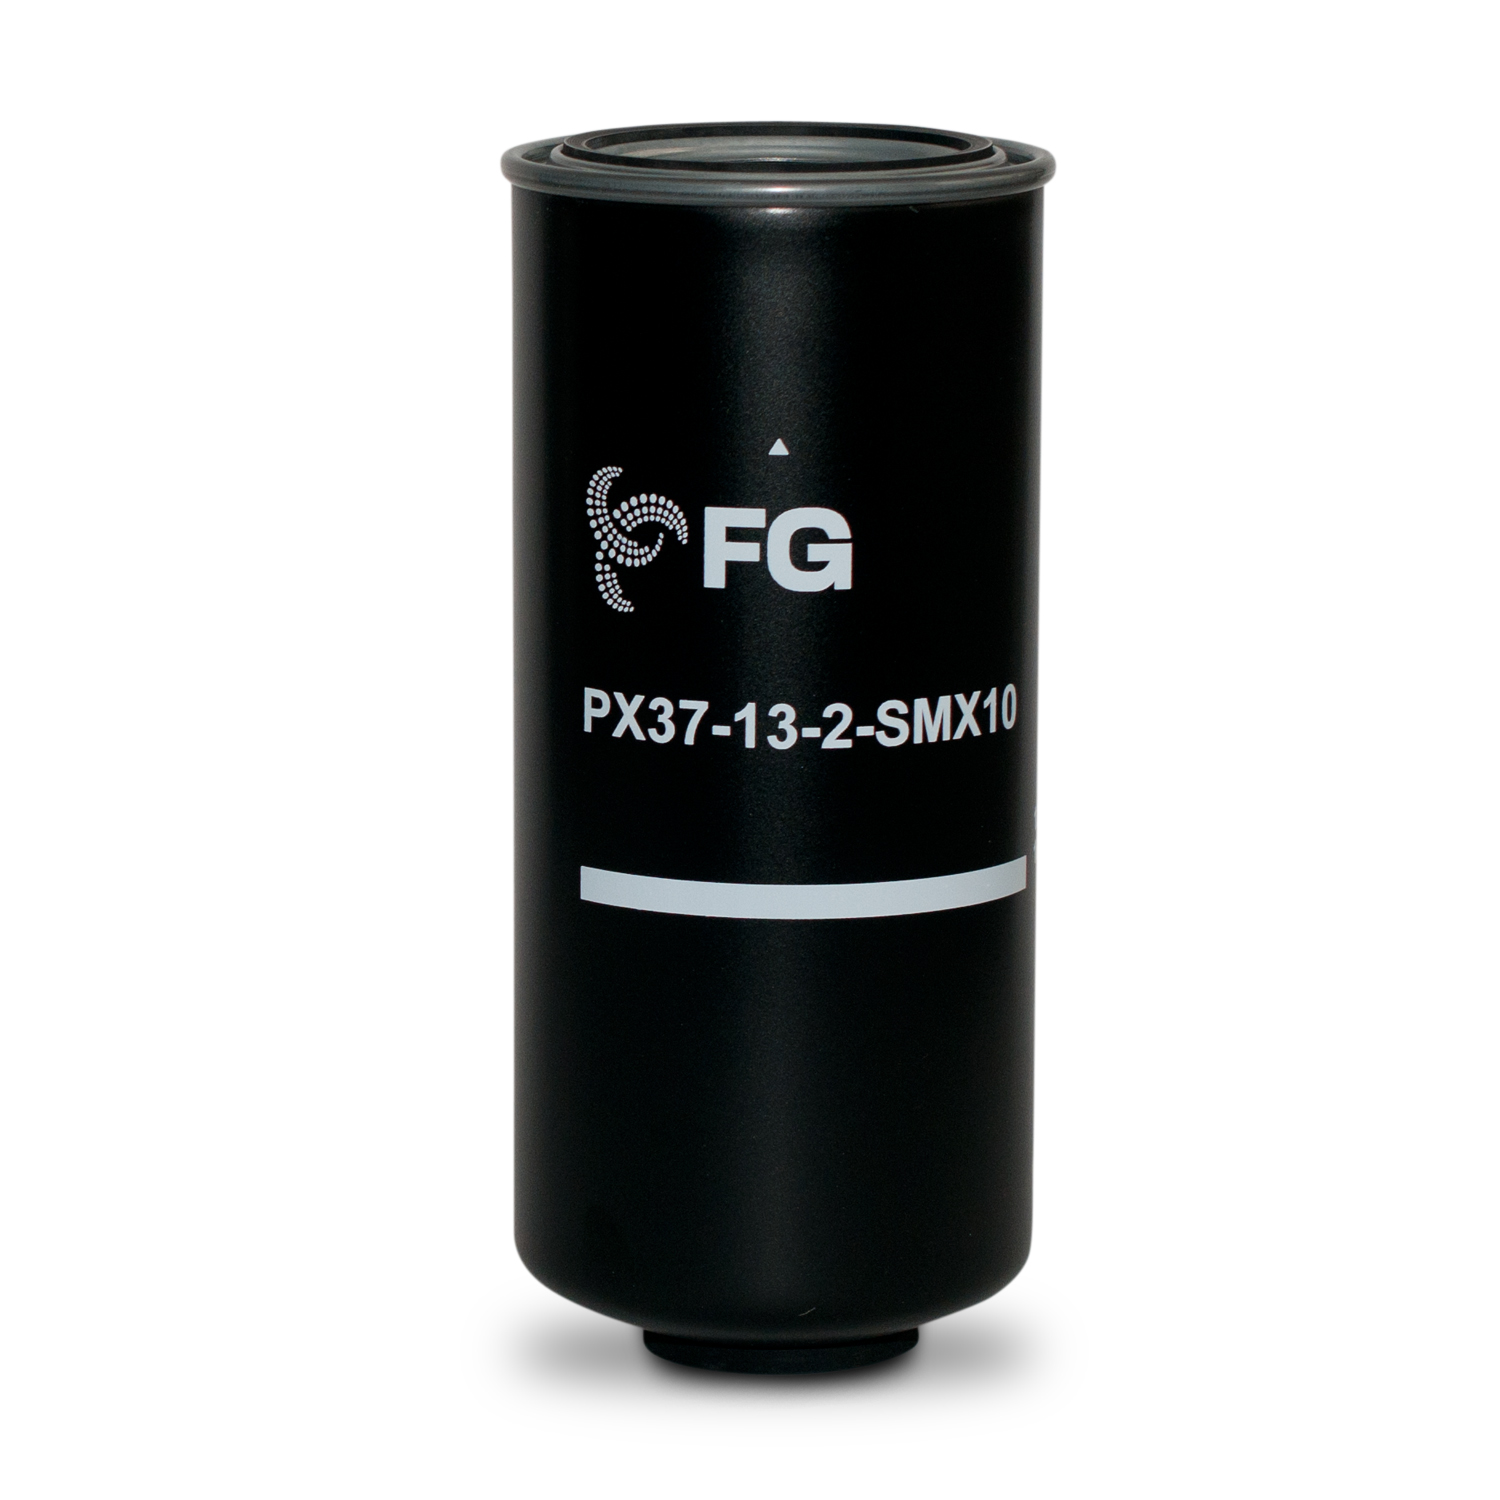 PX37-13-2-SMX10 Spin-on Filter Filtration Group